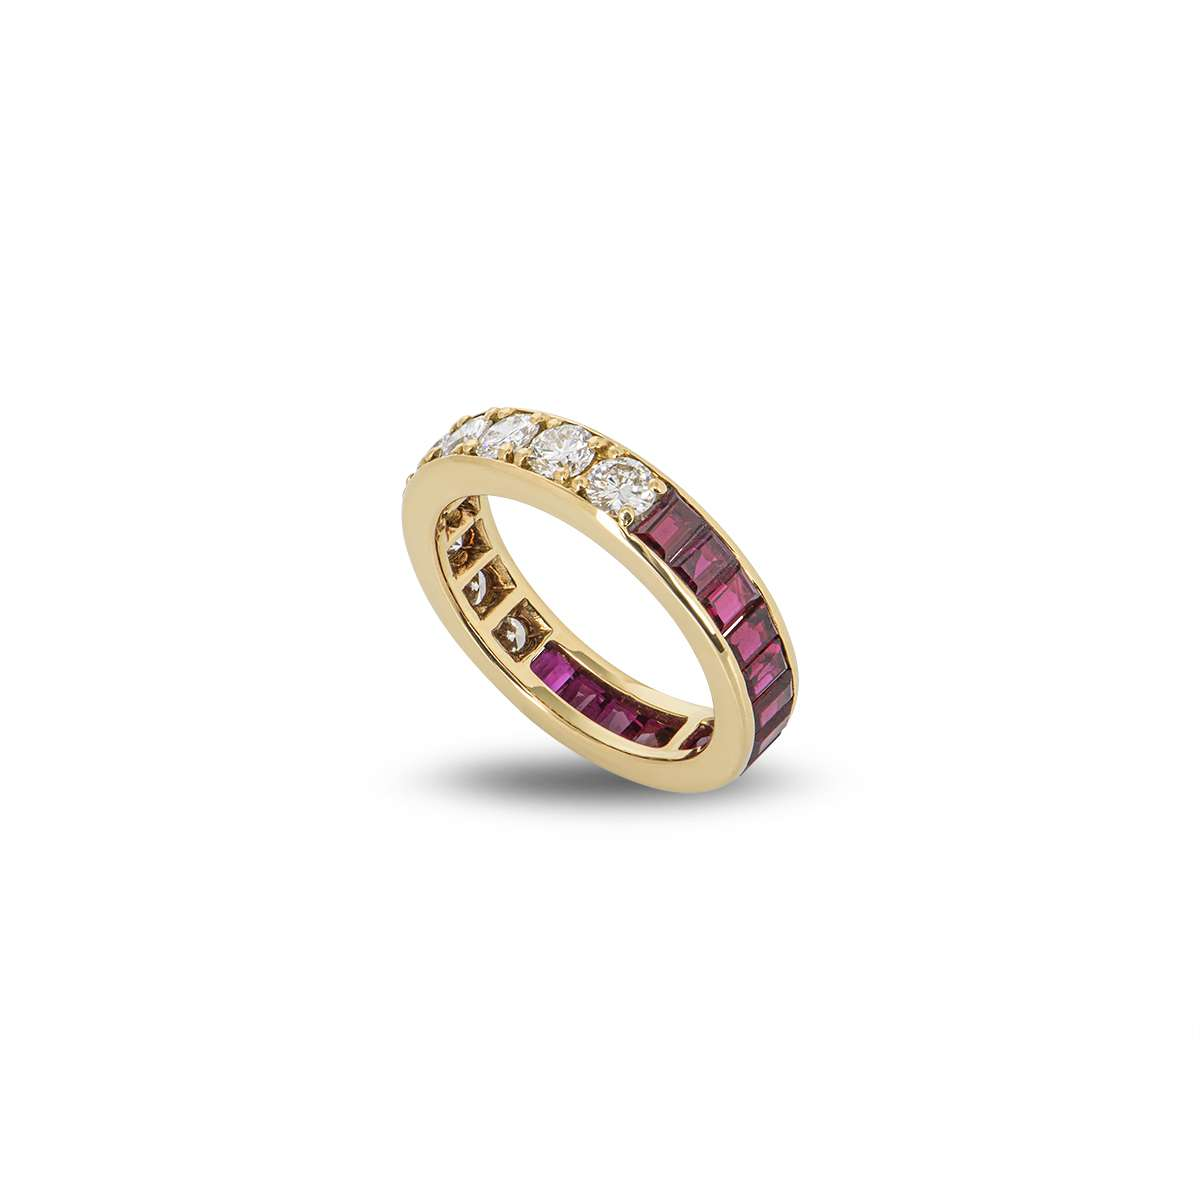 18k Yellow Gold Diamond and Ruby Dress Ring